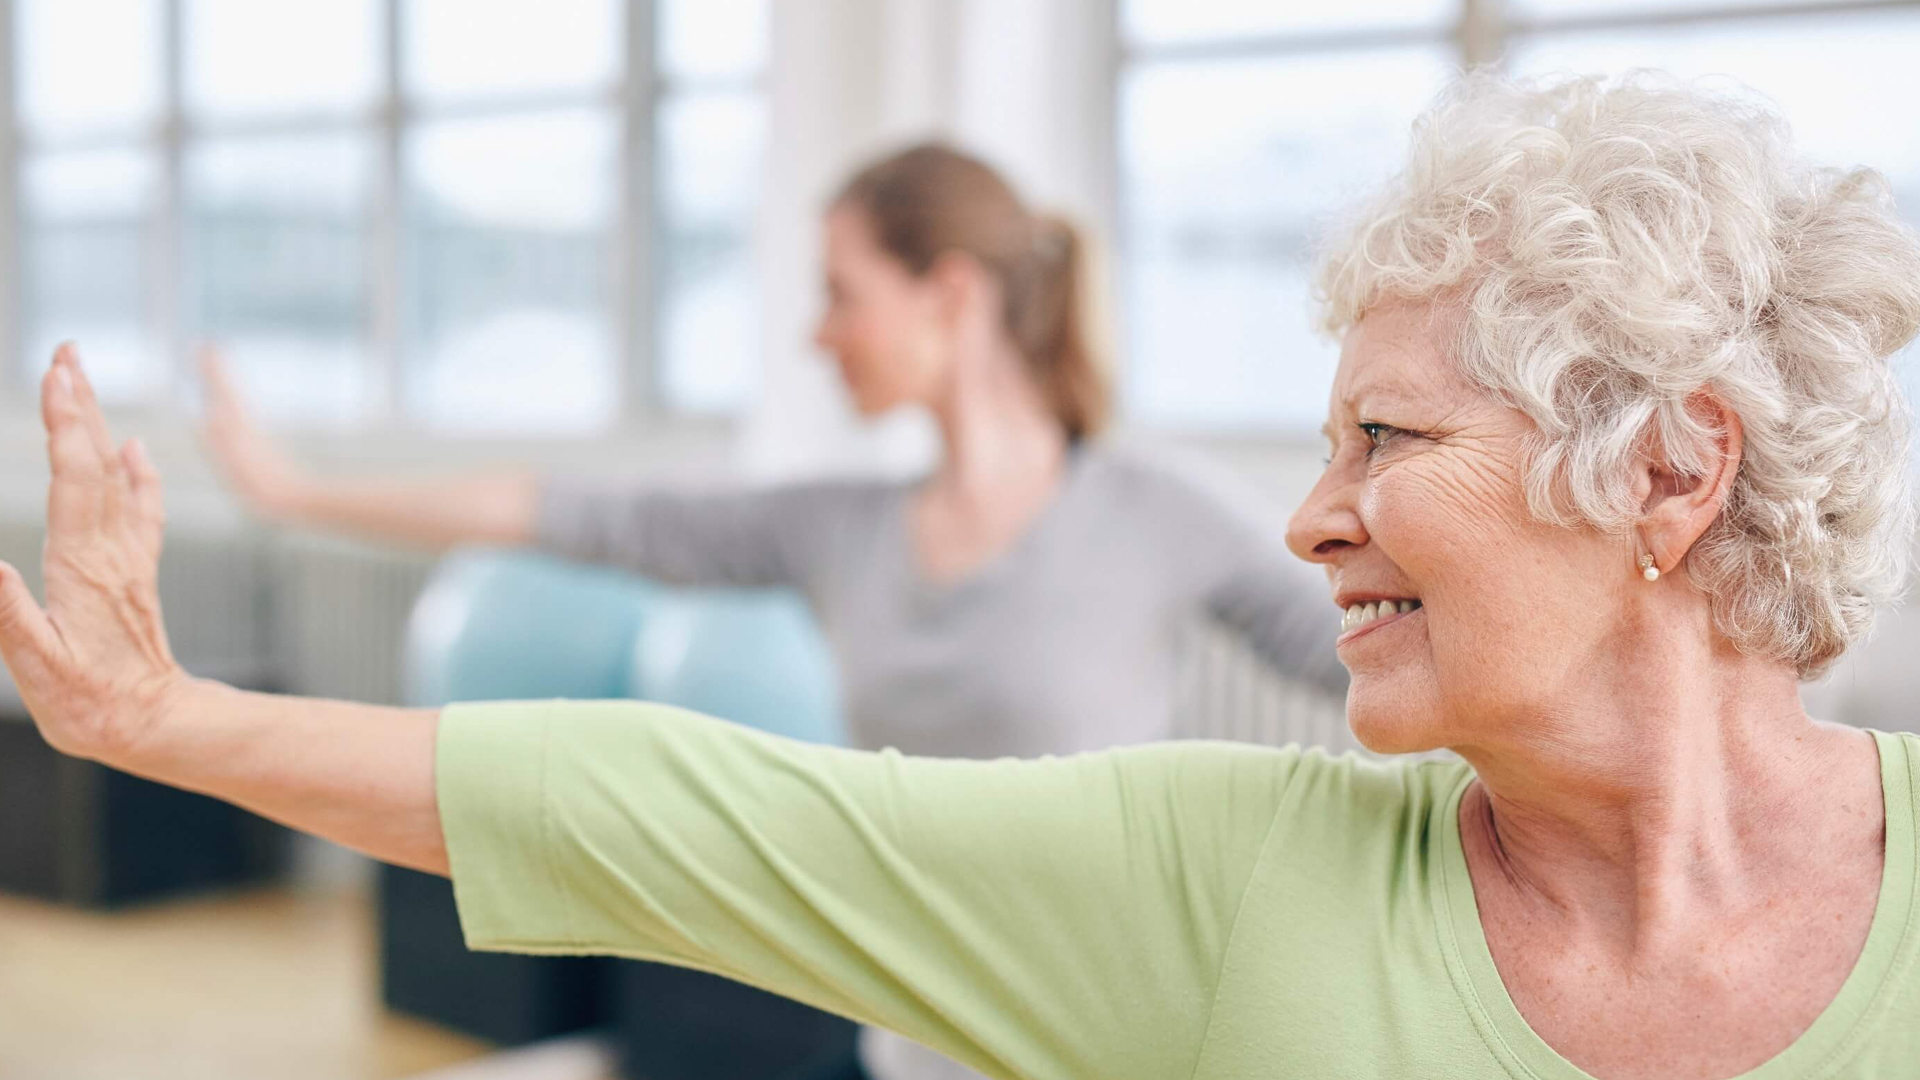 Yoga for Seniors: Mindful Chair Yoga Poses and Coherent Breathing - Vitality Senior Living